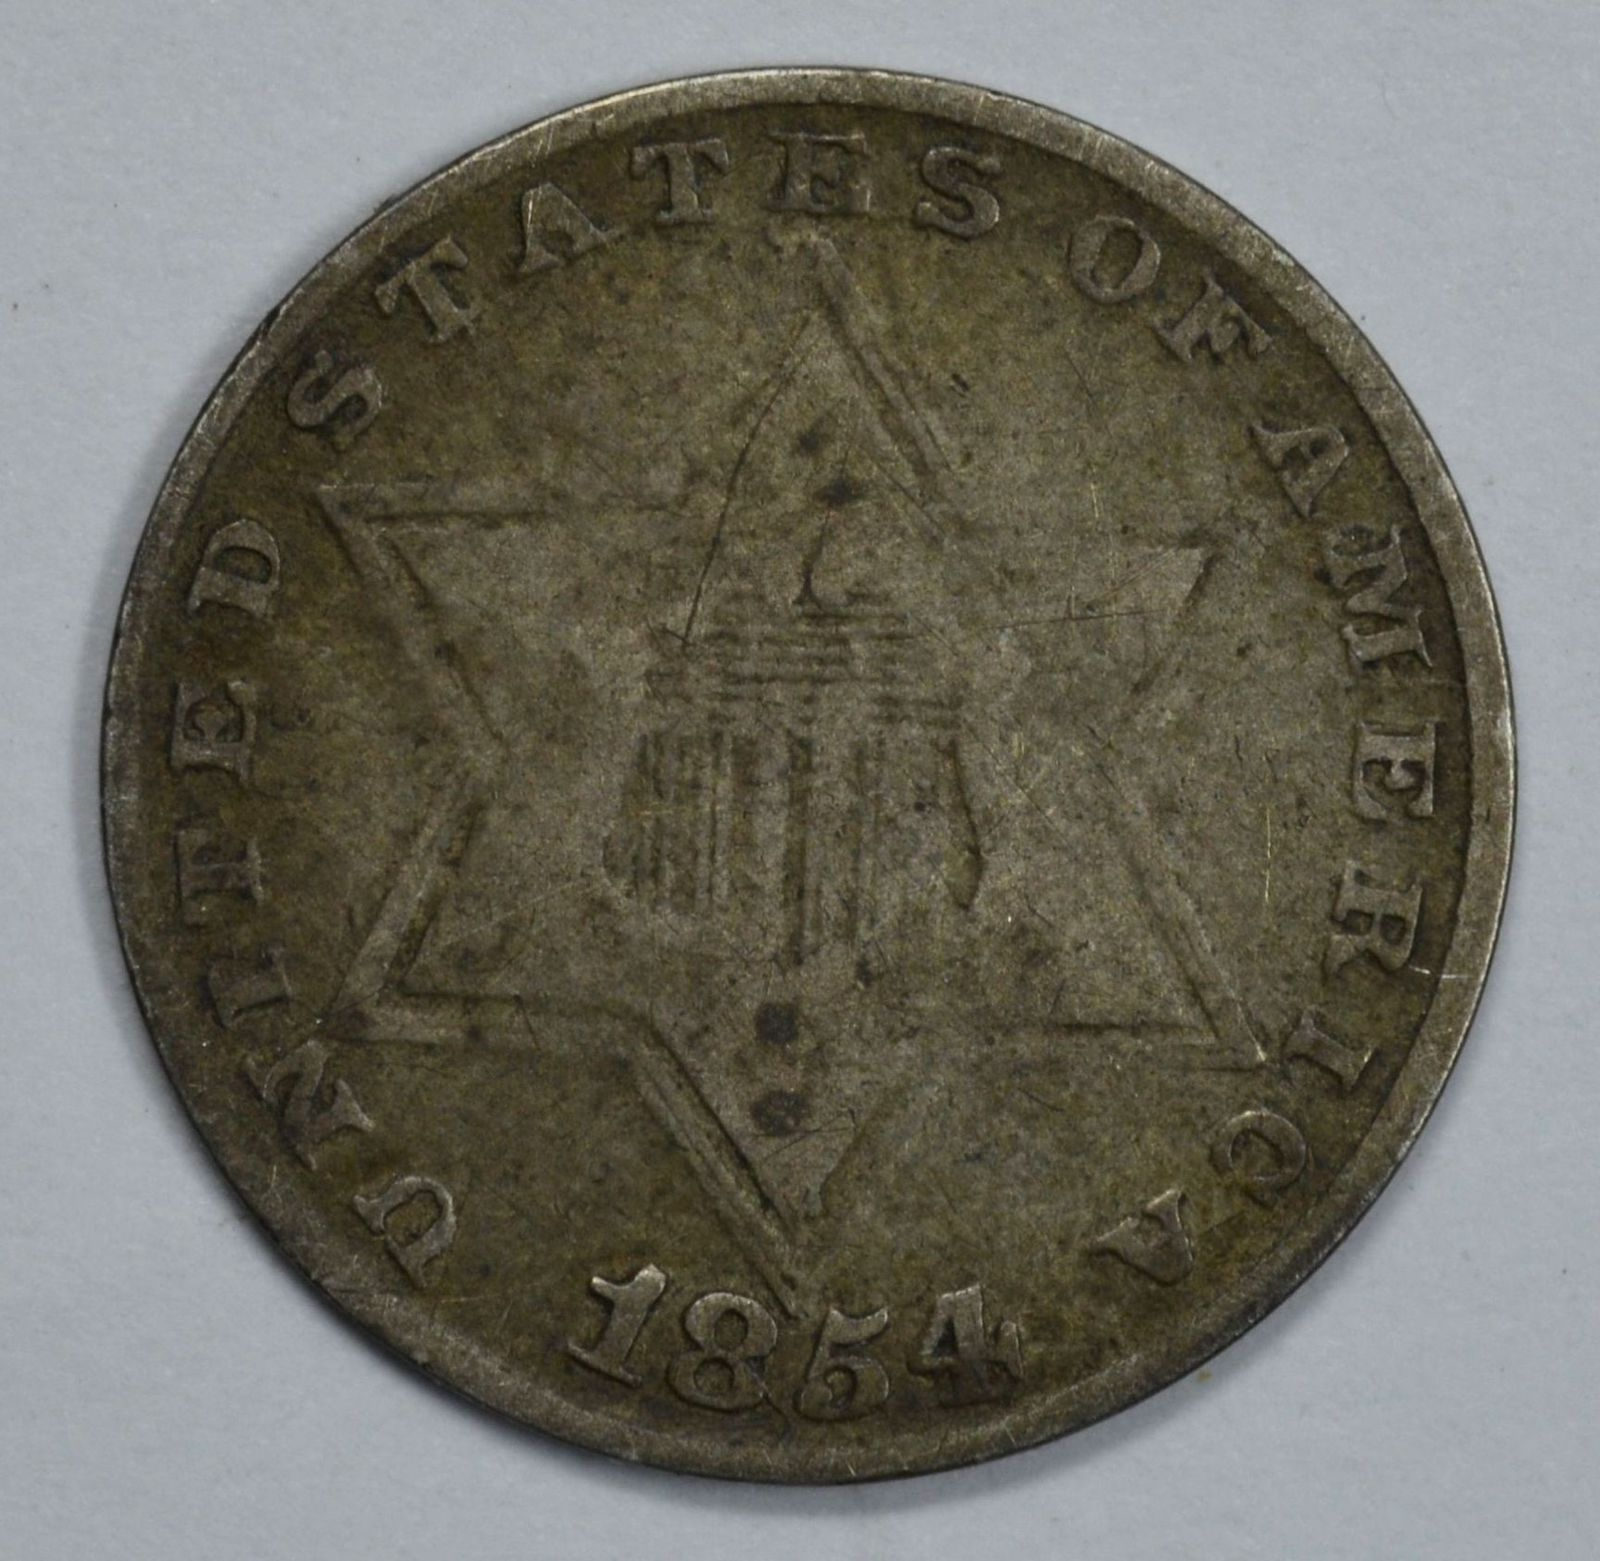 Primary image for 1854 3 cent circulated silver coin VG details